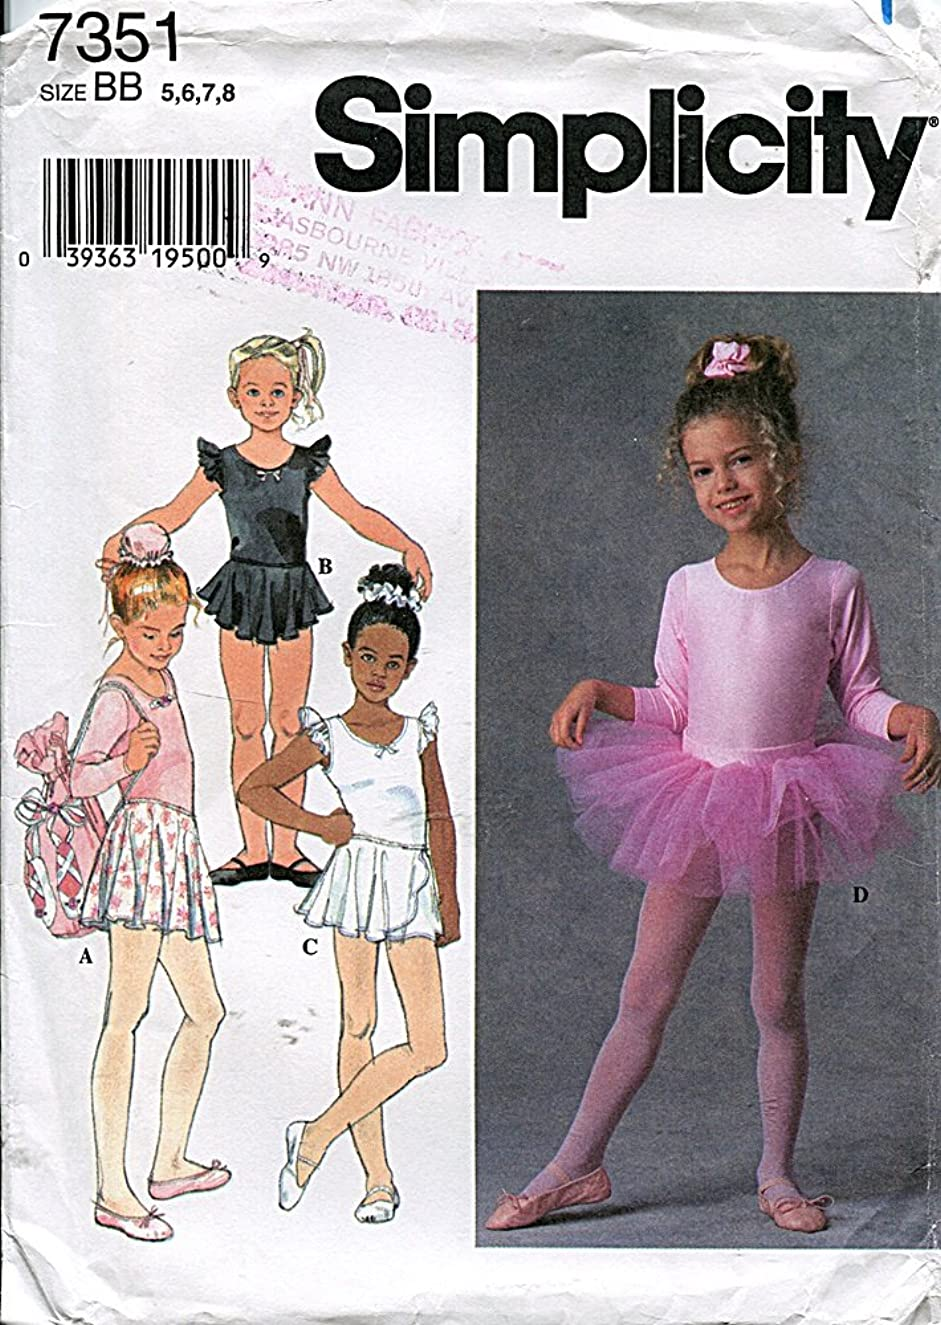 Simplicity Pattern 7351 Girls' Leotards, Skirts, Tutu, Bag and Hair Accessories, Size BB (5-6-7-8)